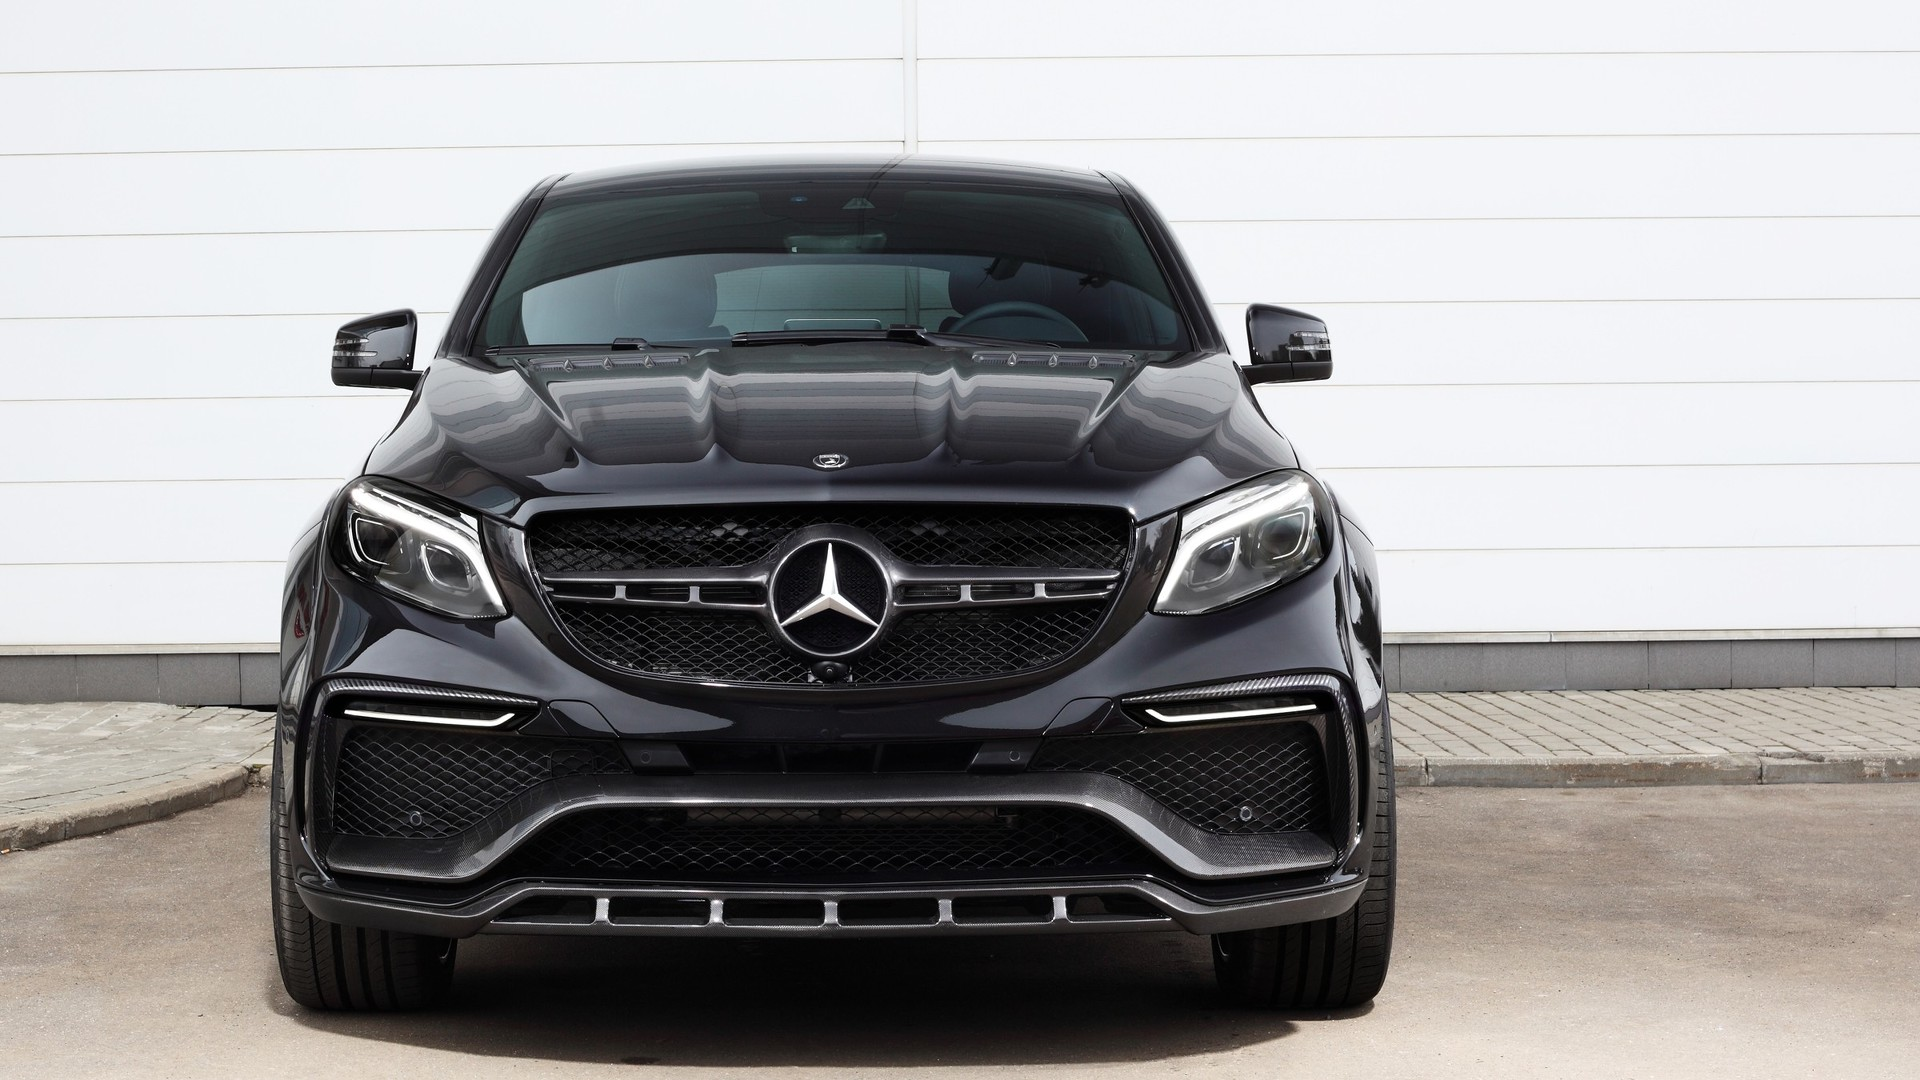 2016 topcar mercedes gle coup inferno dark cars wallpapers. Black Bedroom Furniture Sets. Home Design Ideas